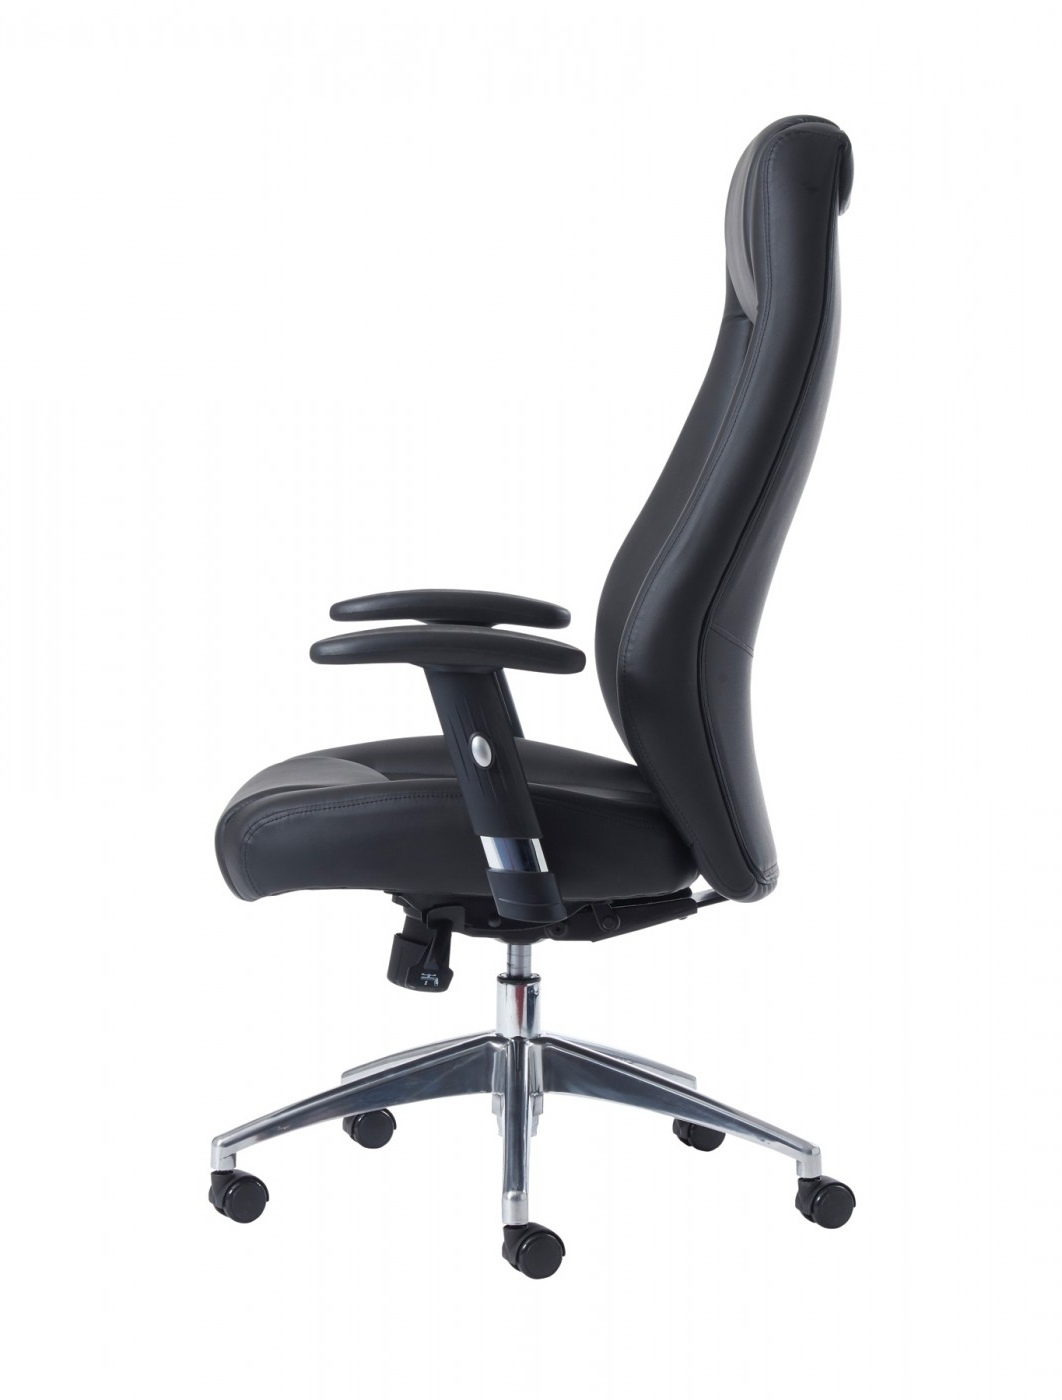 121 Office Pertaining To Black Leather Faced Executive Office Chairs (Gallery 16 of 20)